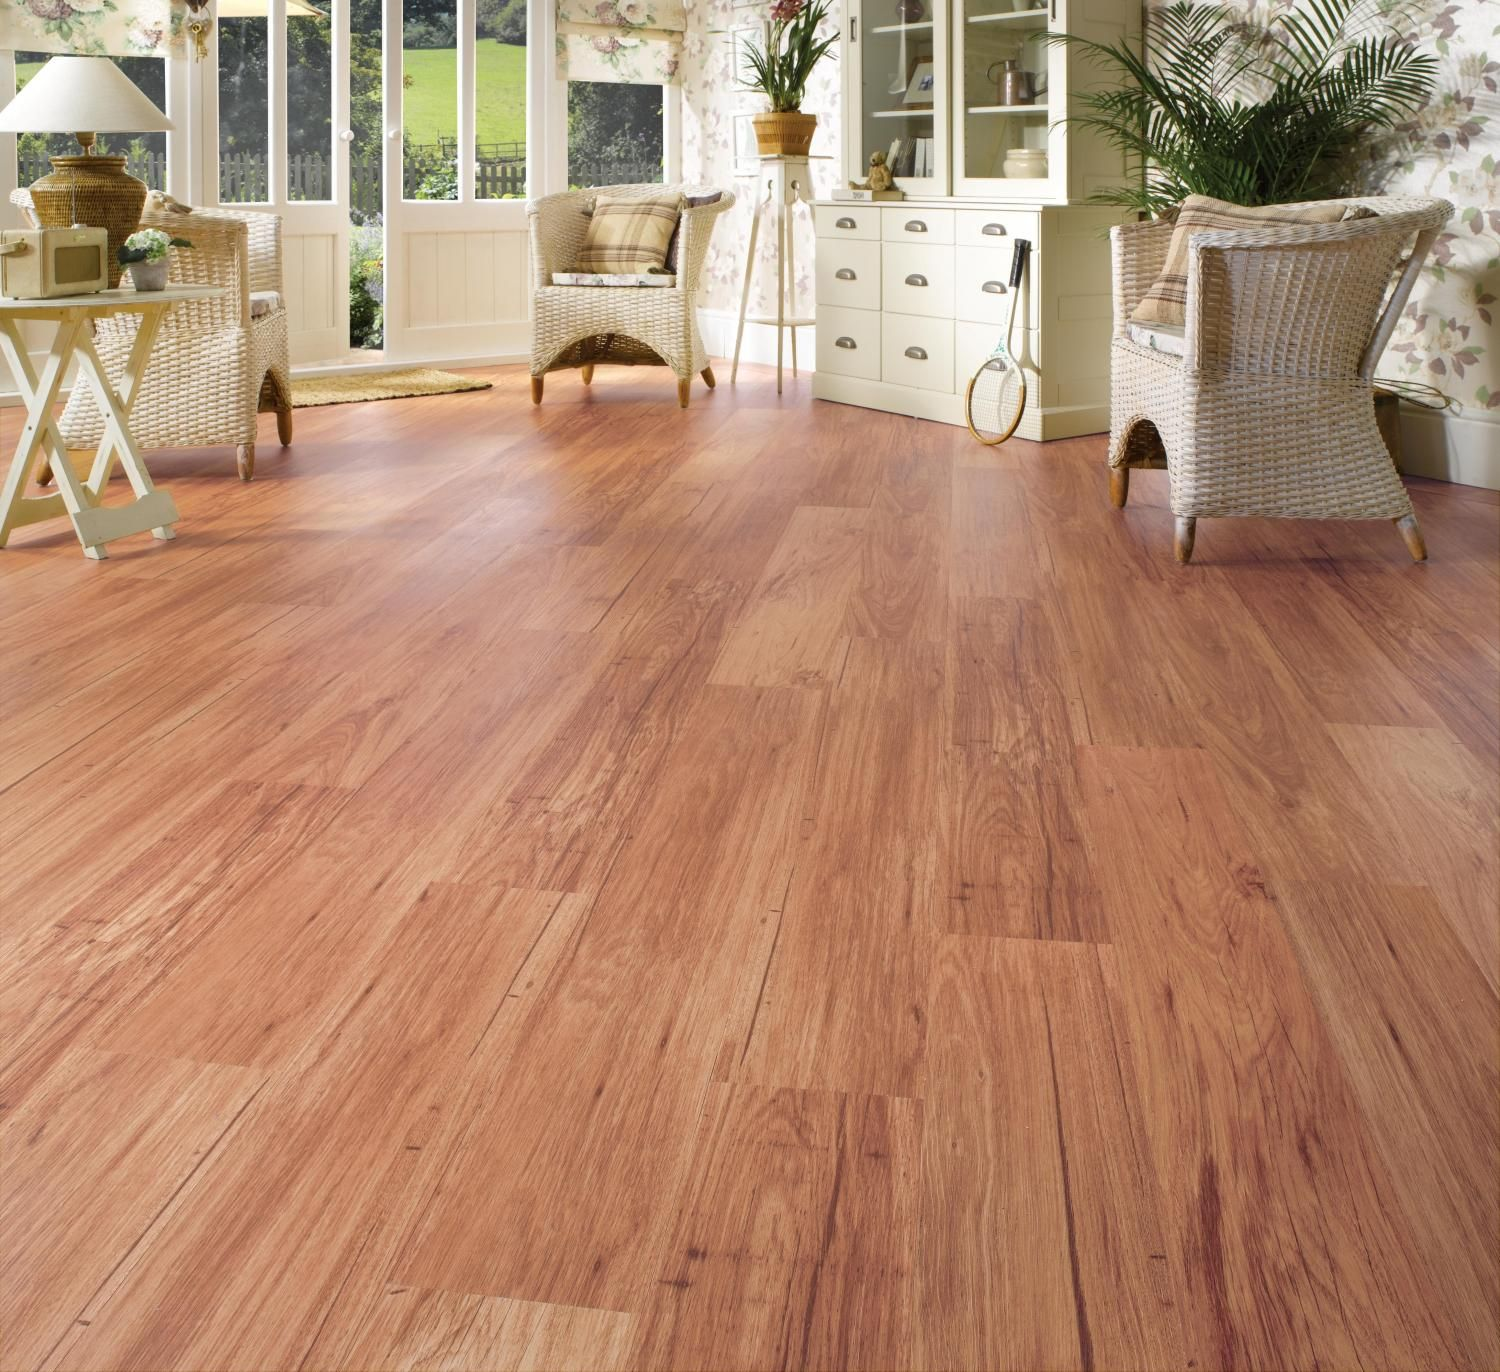 local flooring contractor in newcastle offering supply and fit or fit only